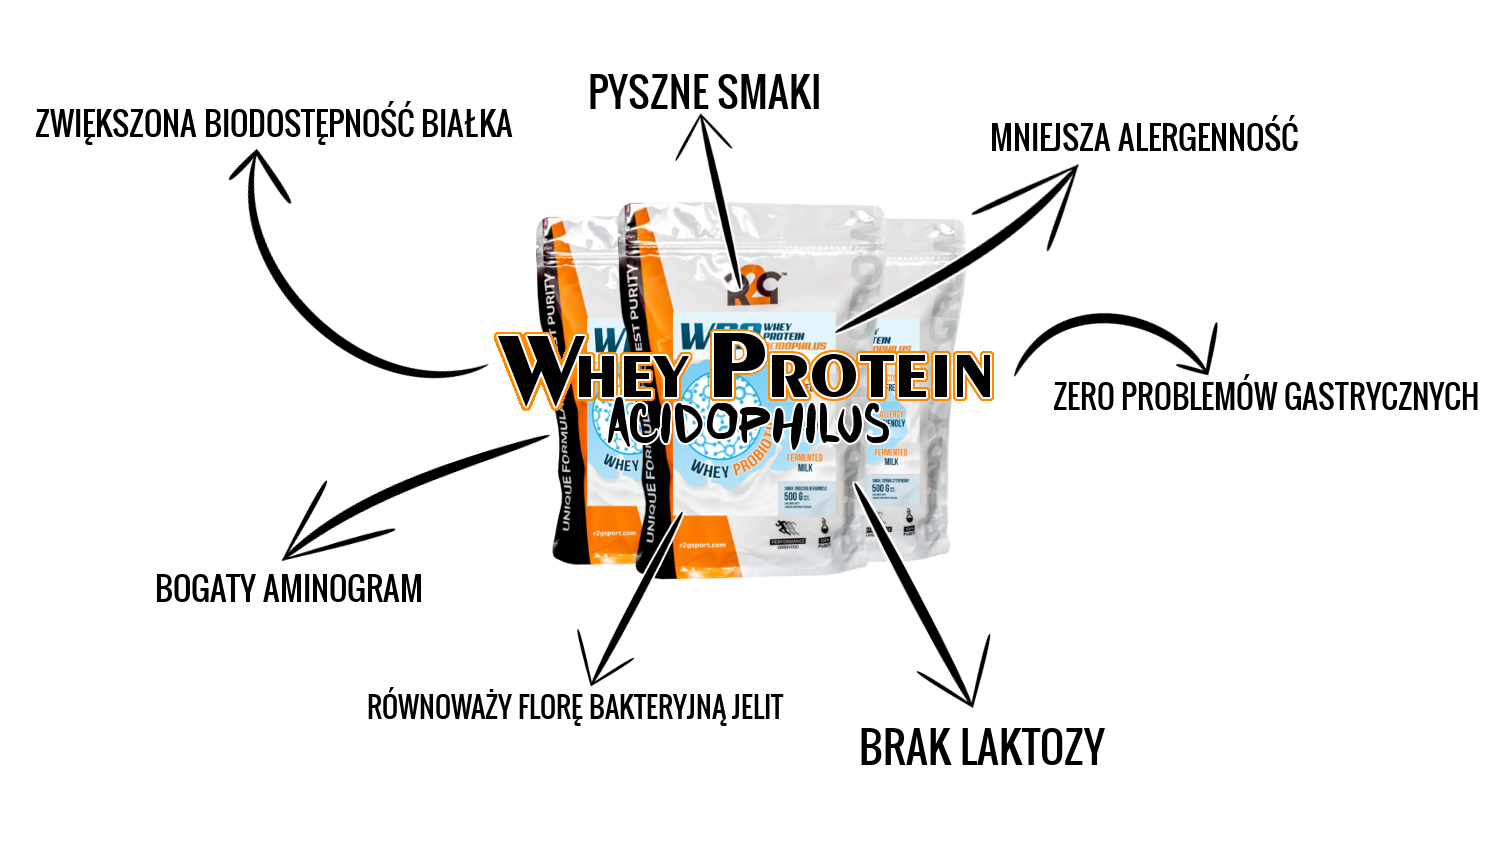 whey_protein_acidophilus2.png